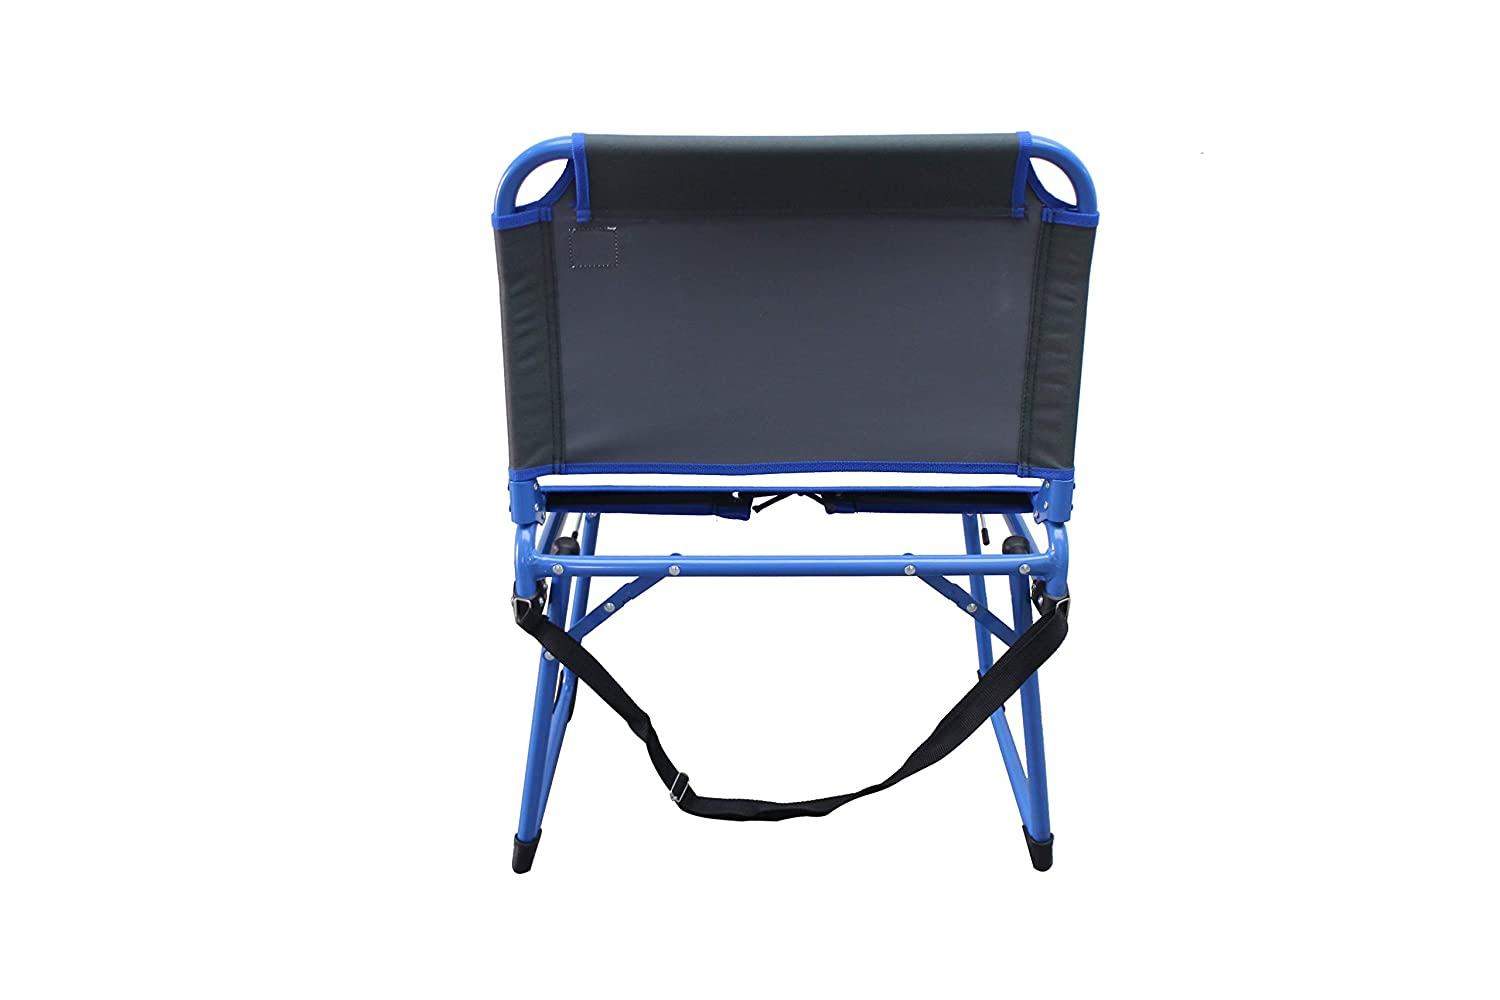 Outdoor Spectator Fold /& Go Wide Stadium Seat for Bleachers Convertible Low Profile Camping Chair 225 Lb Capacity